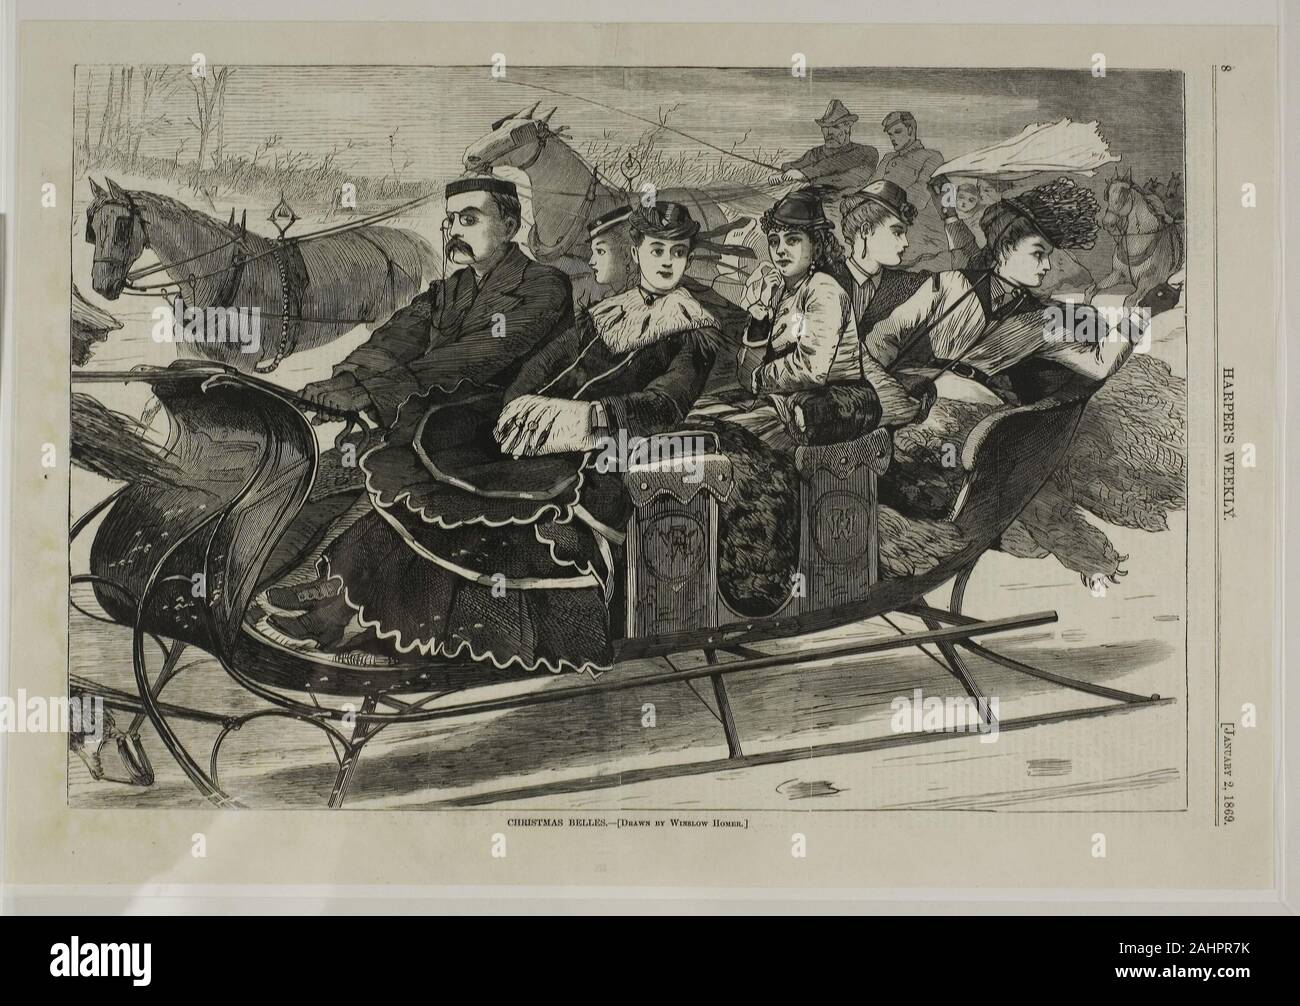 NEGROES GATHERING CHRISTMAS EVERGREENS HORSE SNOW SLED WOODS HARPER/'S WEEKLY